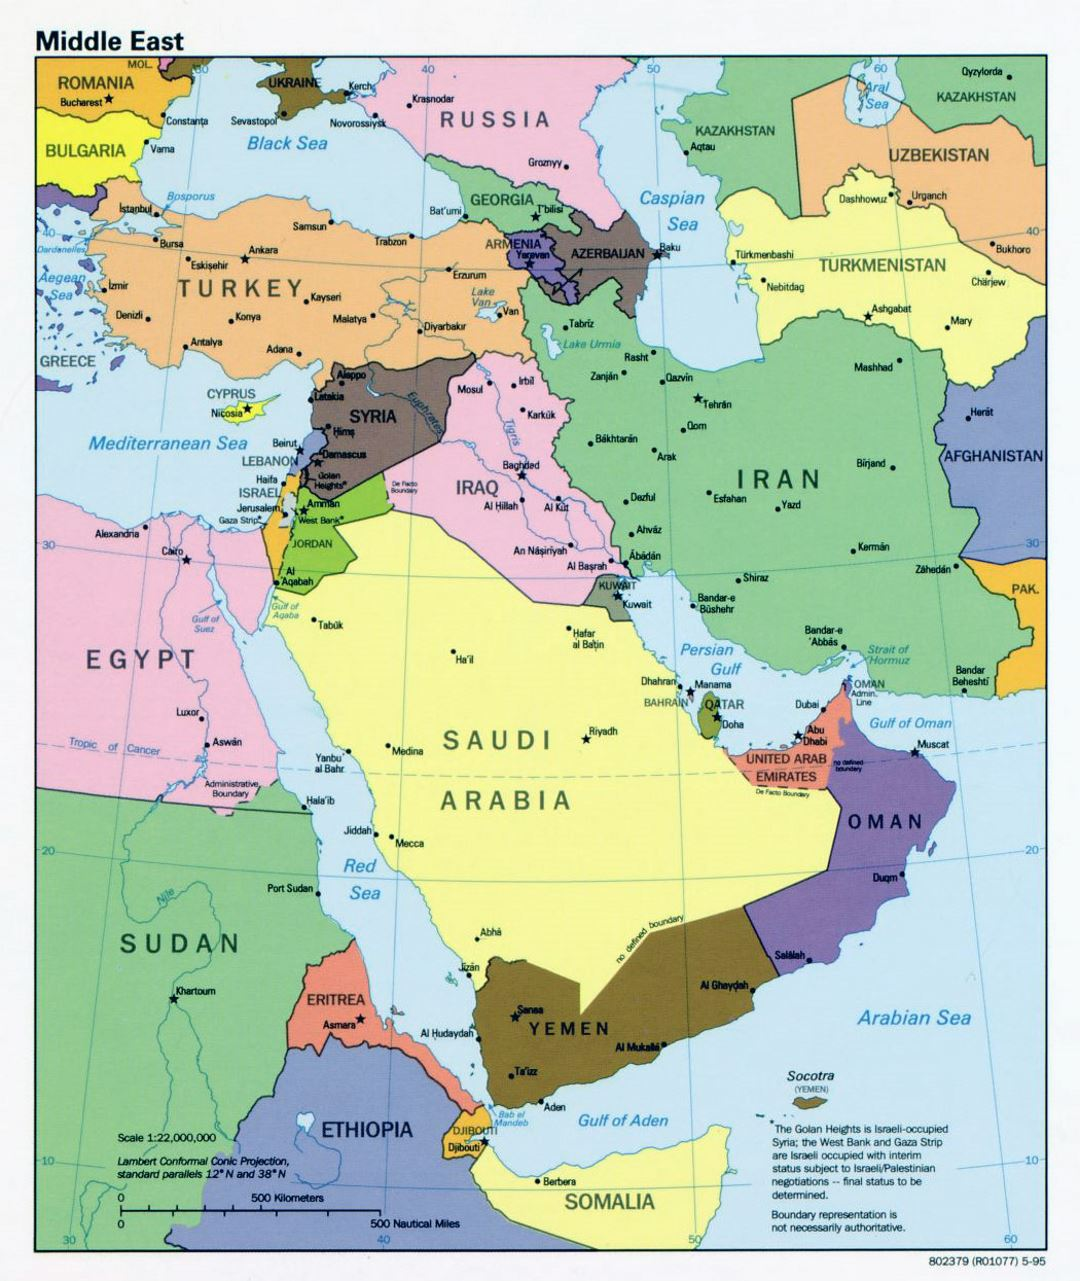 Detailed political map of the Middle East with capitals and major